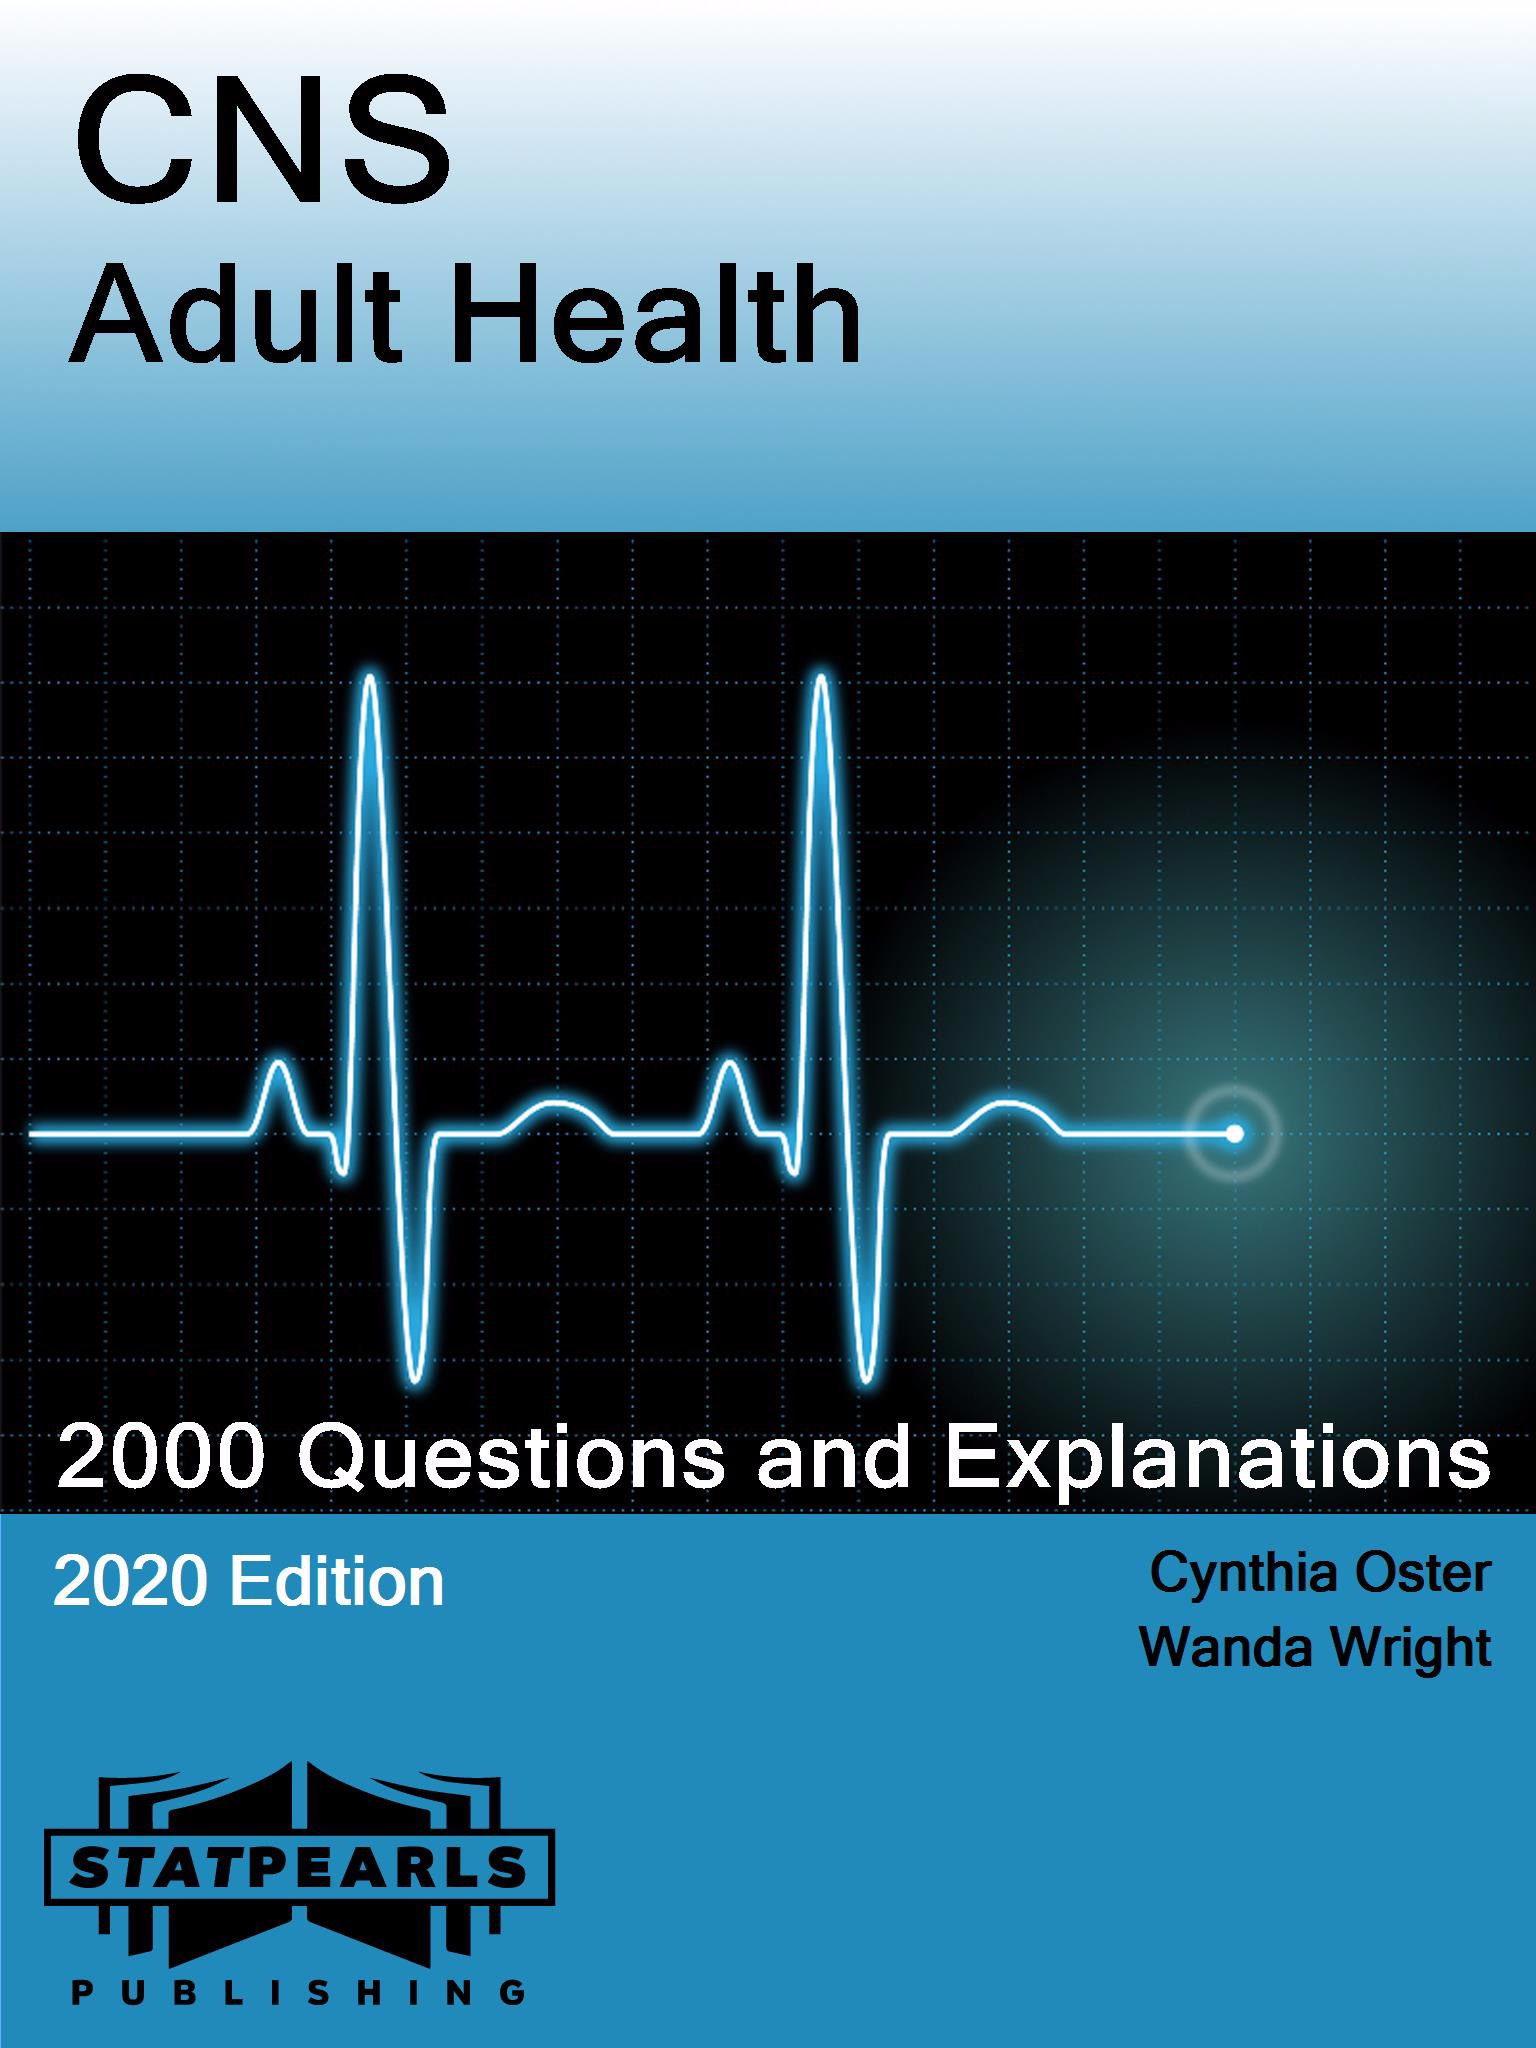 CNS Adult Health